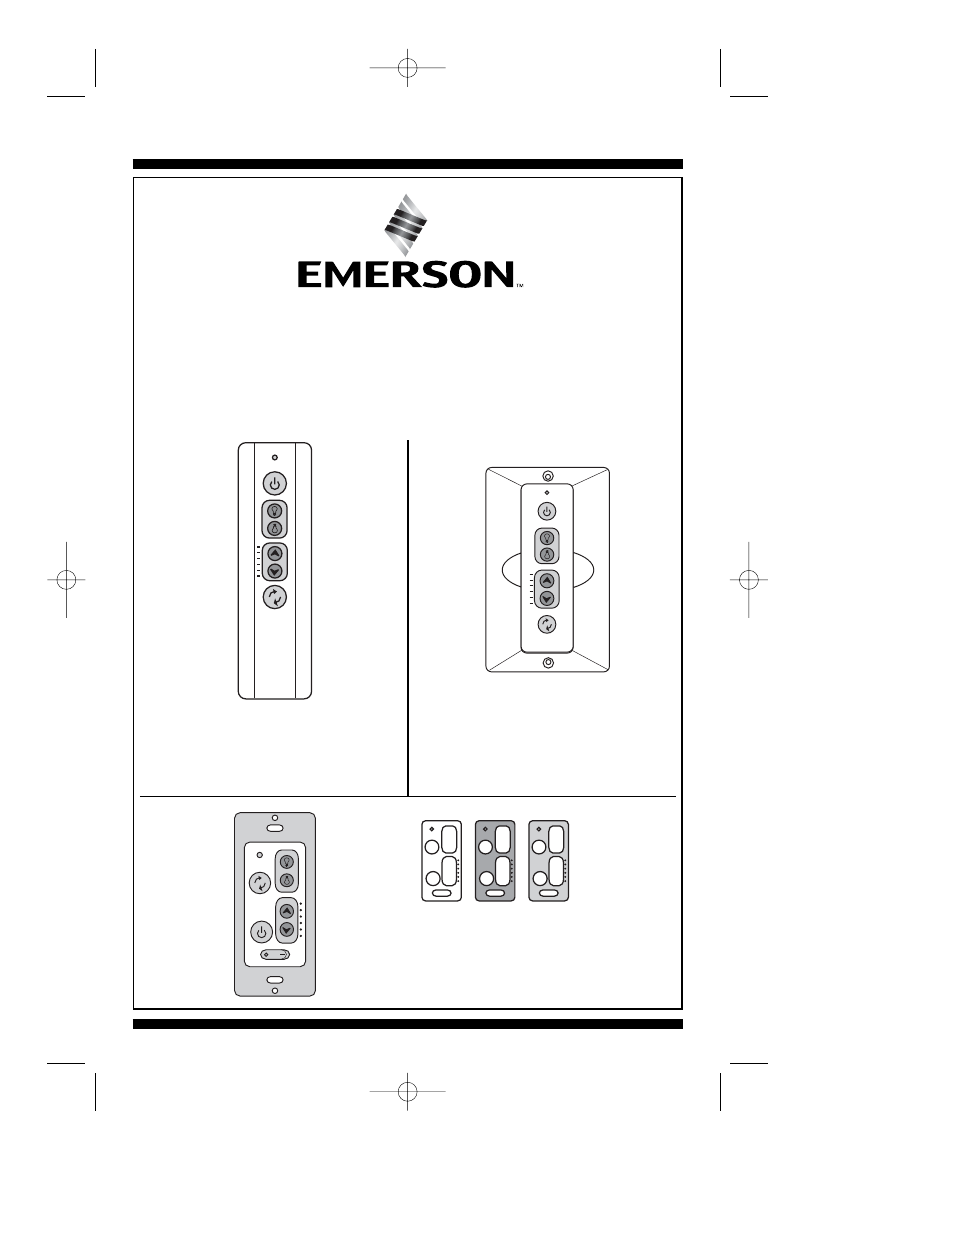 emerson sw605 owner s manual free pdf download 12 pages rh manualagent com  Emerson Electric Motor Parts Diagram Emerson Electric Motor Diagram